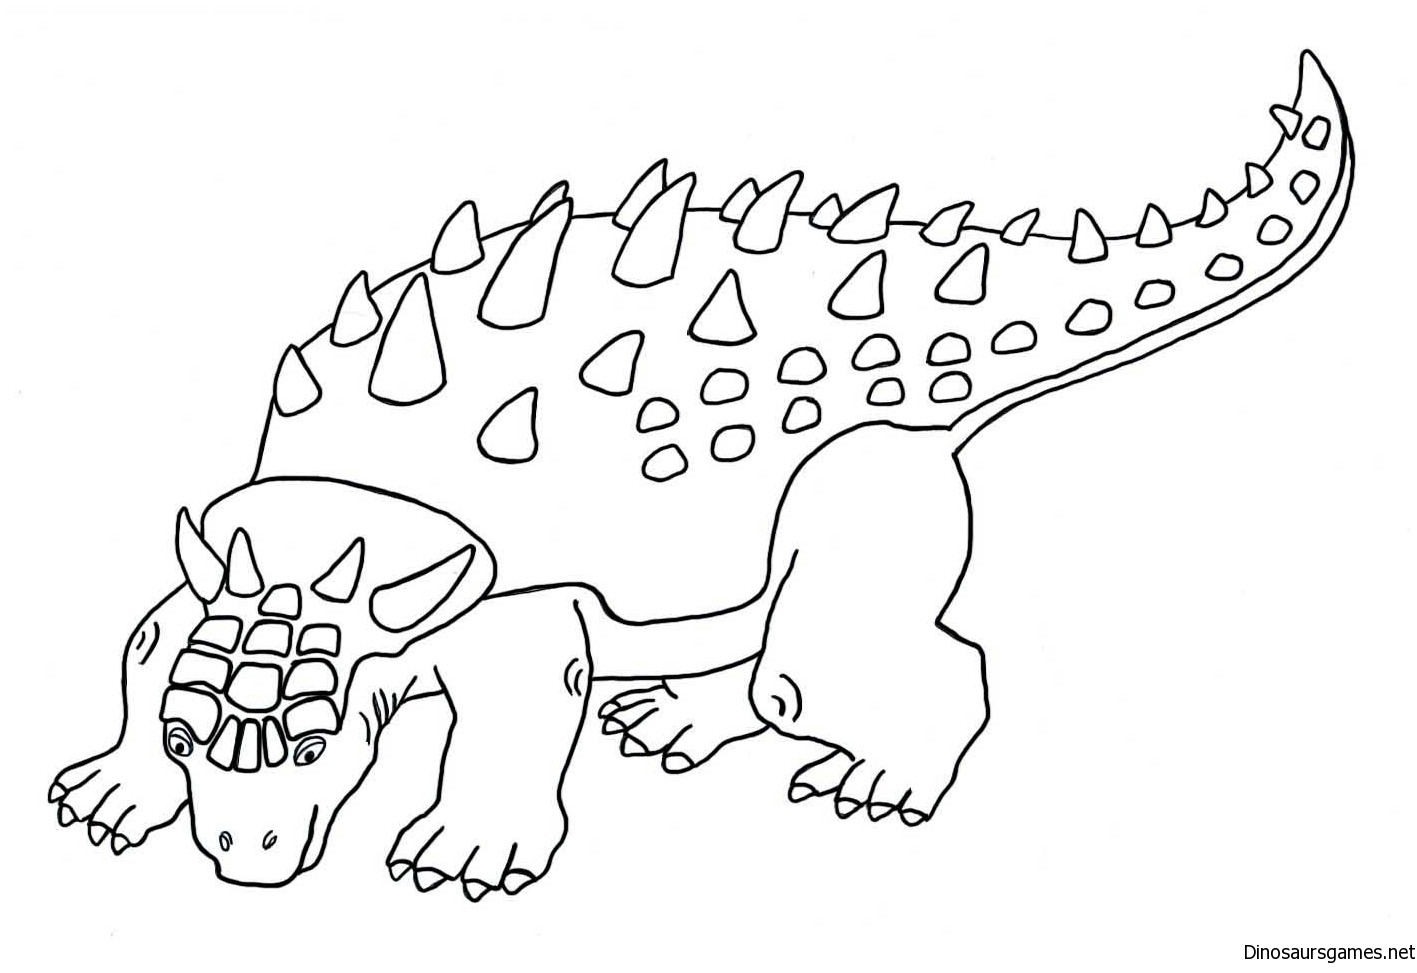 How To Make A Dinosaur Coloring Book For Children By Dinosaursgamesonline Medium